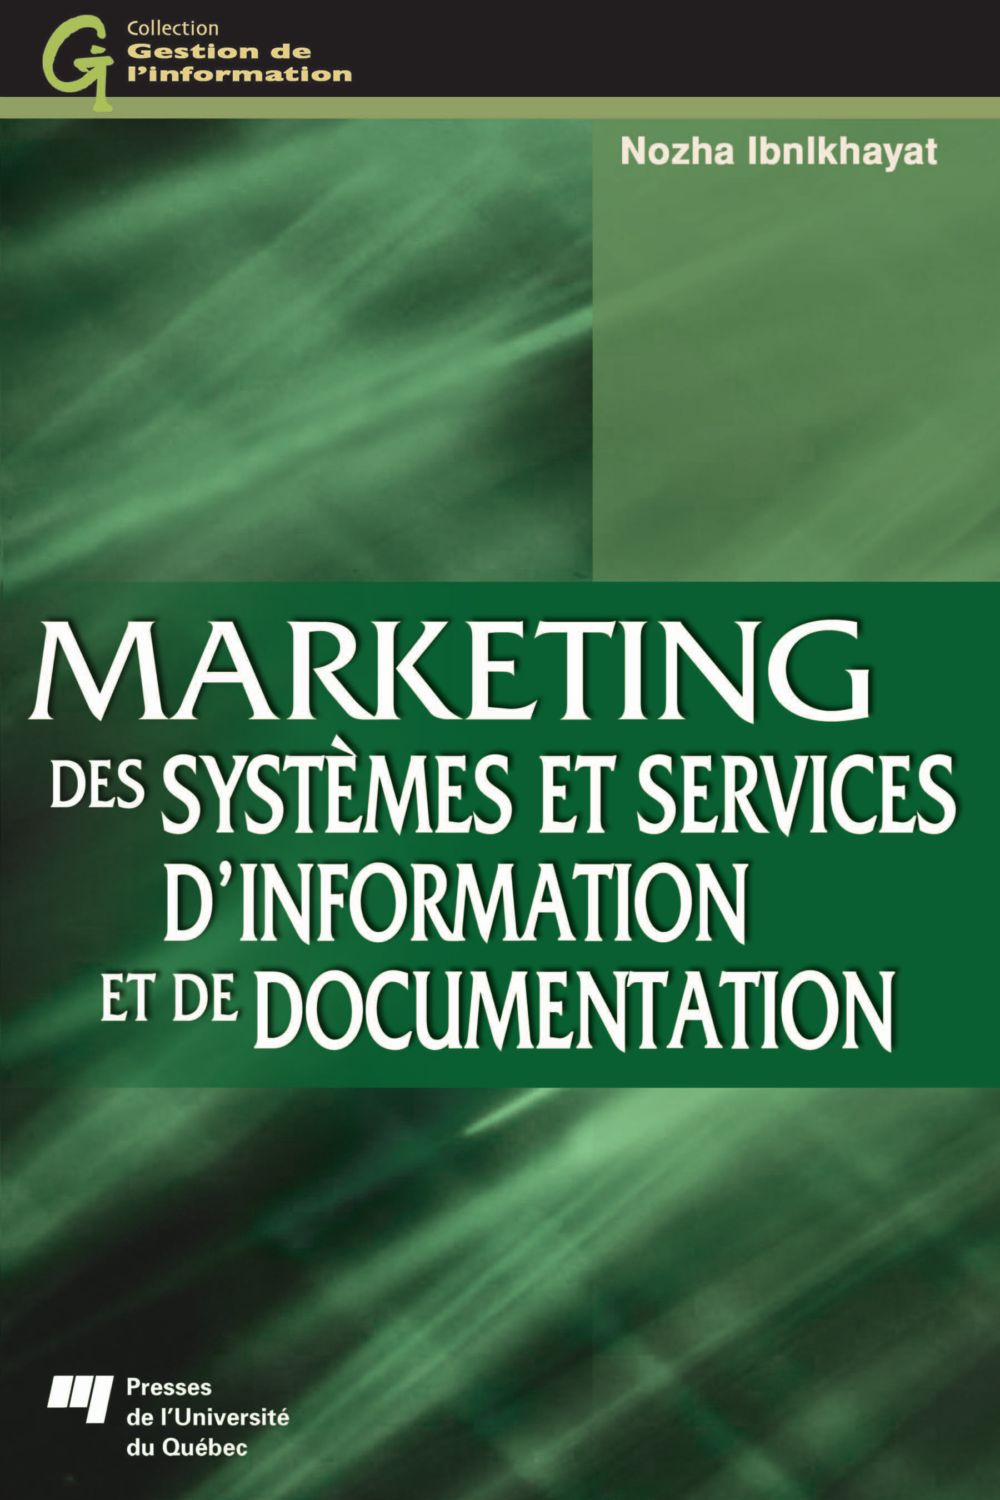 Marketing des systèmes et services d'information et de documentation